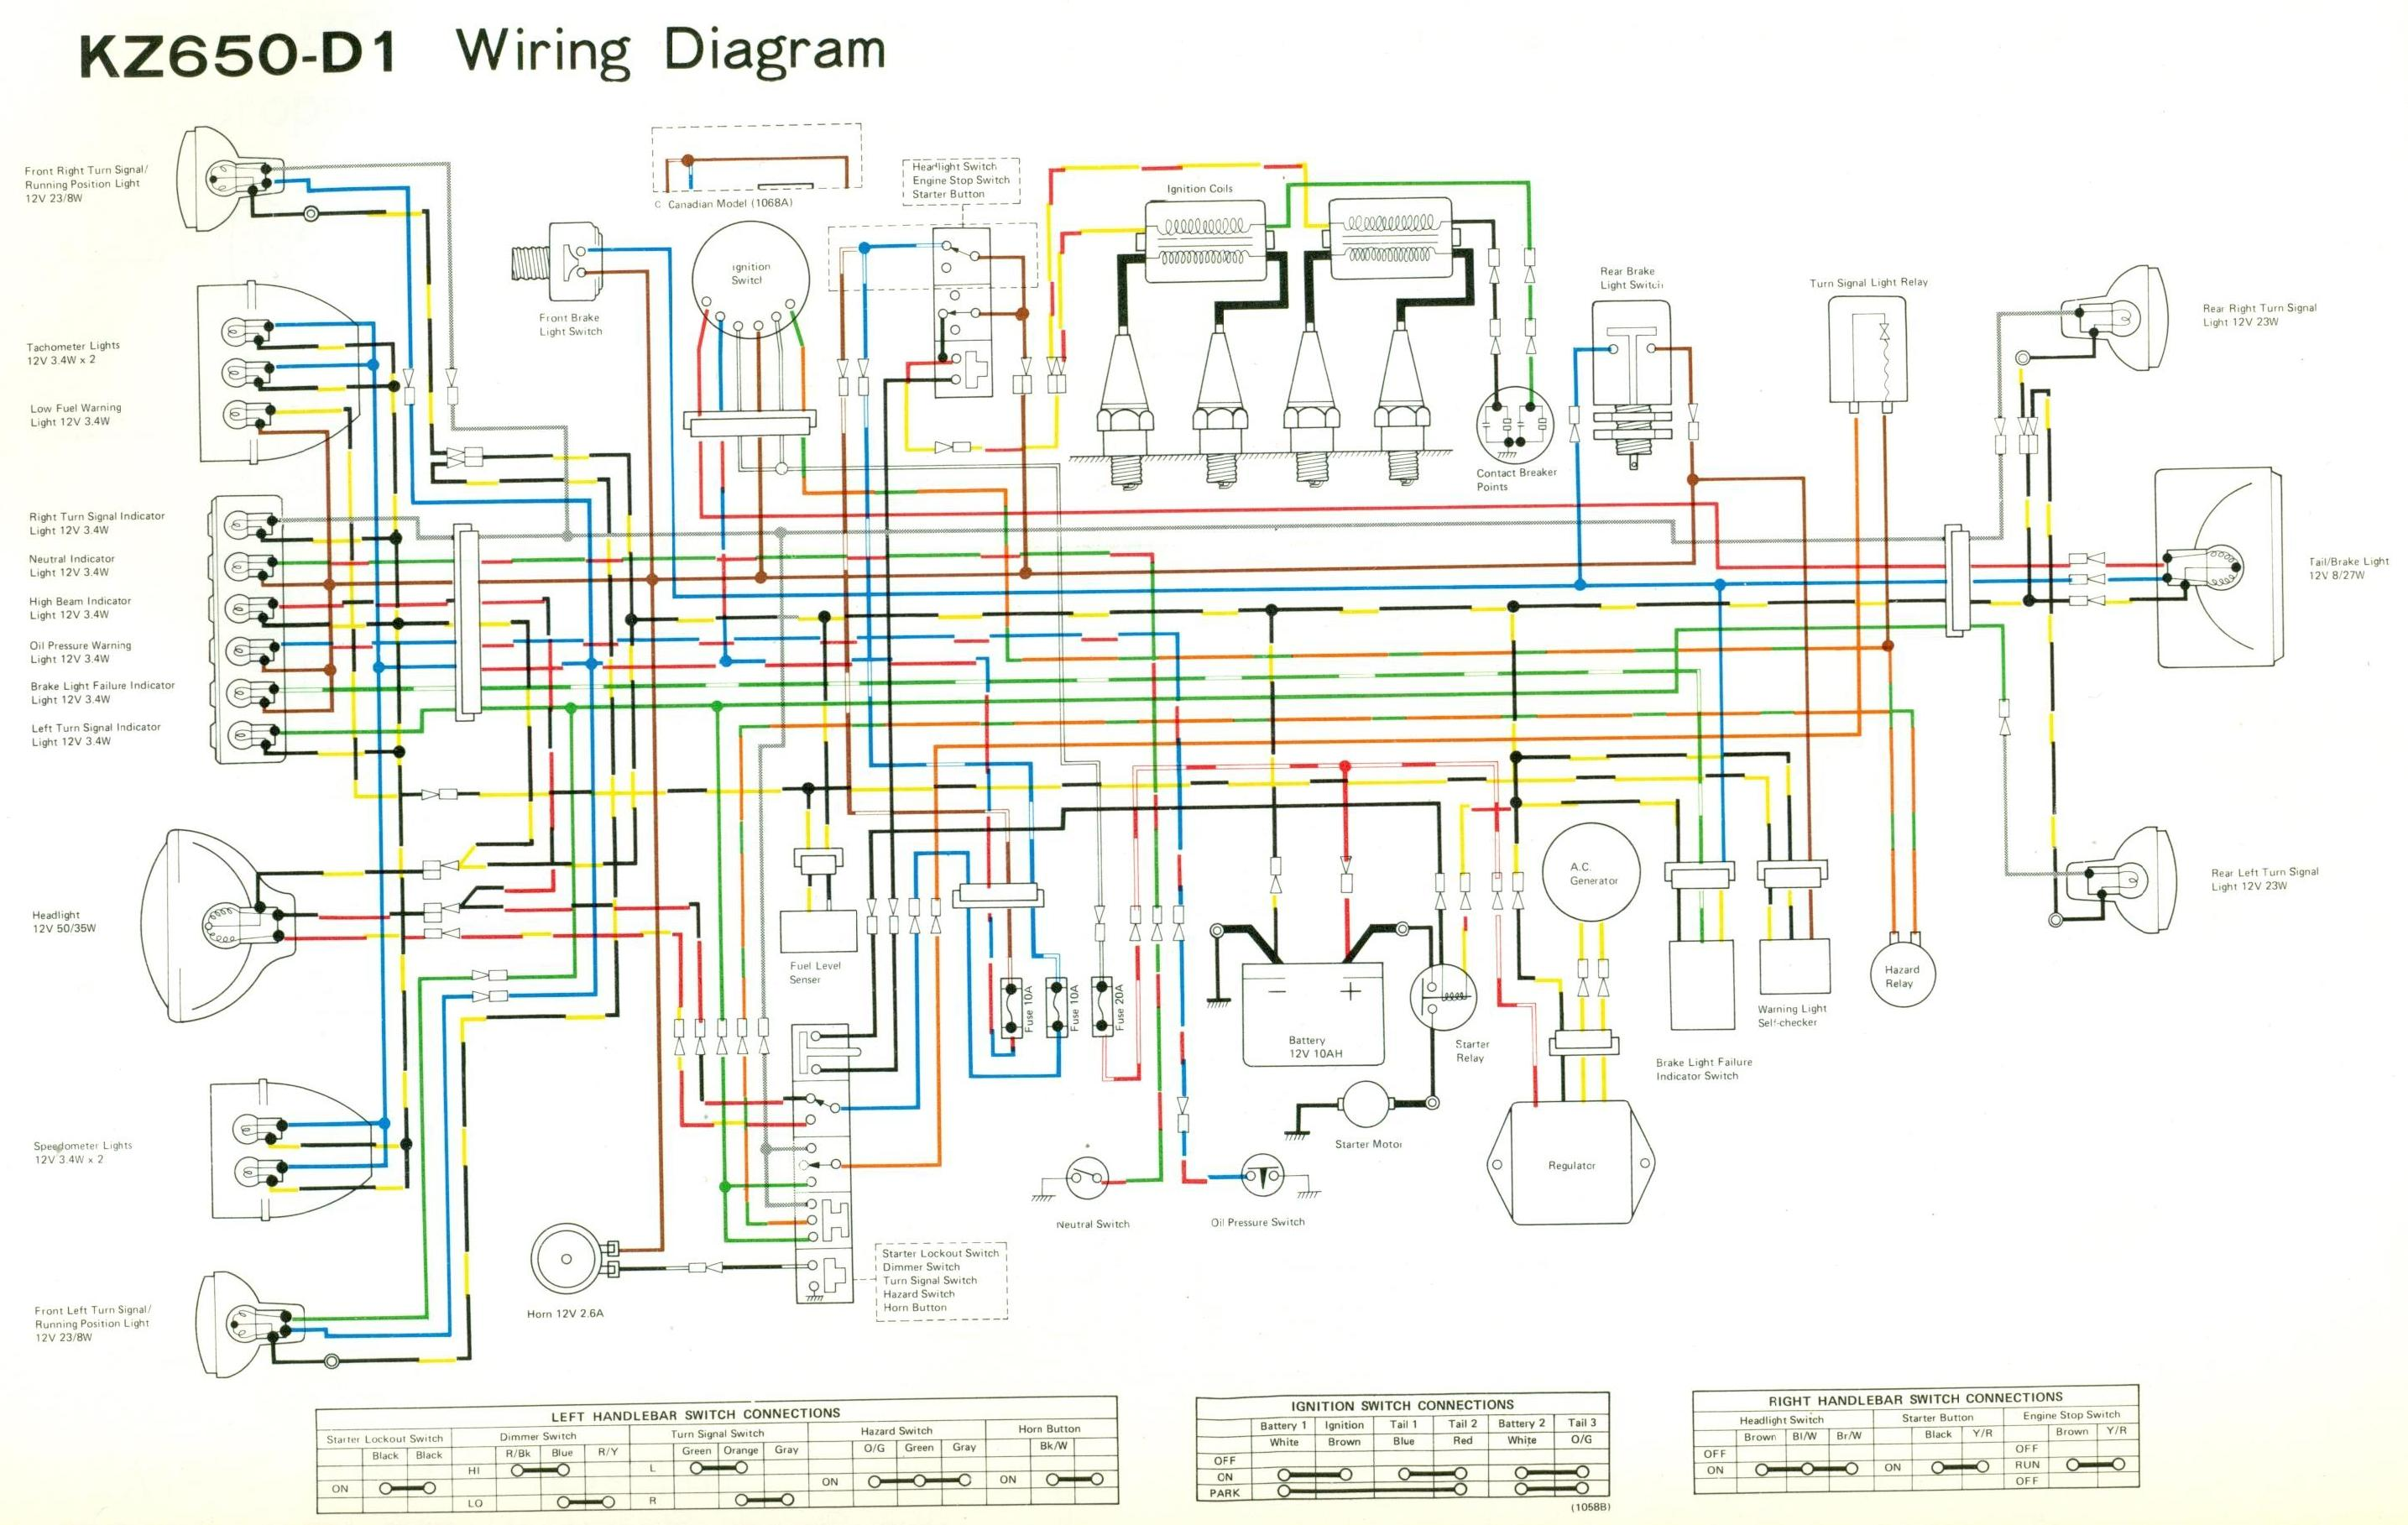 Wiring Diagrams on kawasaki atv engine diagram, yamaha atv wiring diagram, kawasaki prairie 400 wiring diagram, kawasaki prairie 300 wiring diagram, kazuma atv wiring diagram, kawasaki 100 wiring diagram, kawasaki mule 2500 fly wheel, can am atv wiring diagram, kawasaki klf 220 wiring schematic, kawasaki electrical diagrams, kawasaki parts diagram, kawasaki 750 wiring diagram, kawasaki kz650 wiring-diagram, kawasaki engine wiring diagram, kawasaki v-twin wiring diagram, kawasaki 4 wheeler wiring diagram, 220 bayou atv wiring diagram, kawasaki atv transmission diagram, chinese atv transmission diagram, mini atv wiring diagram,